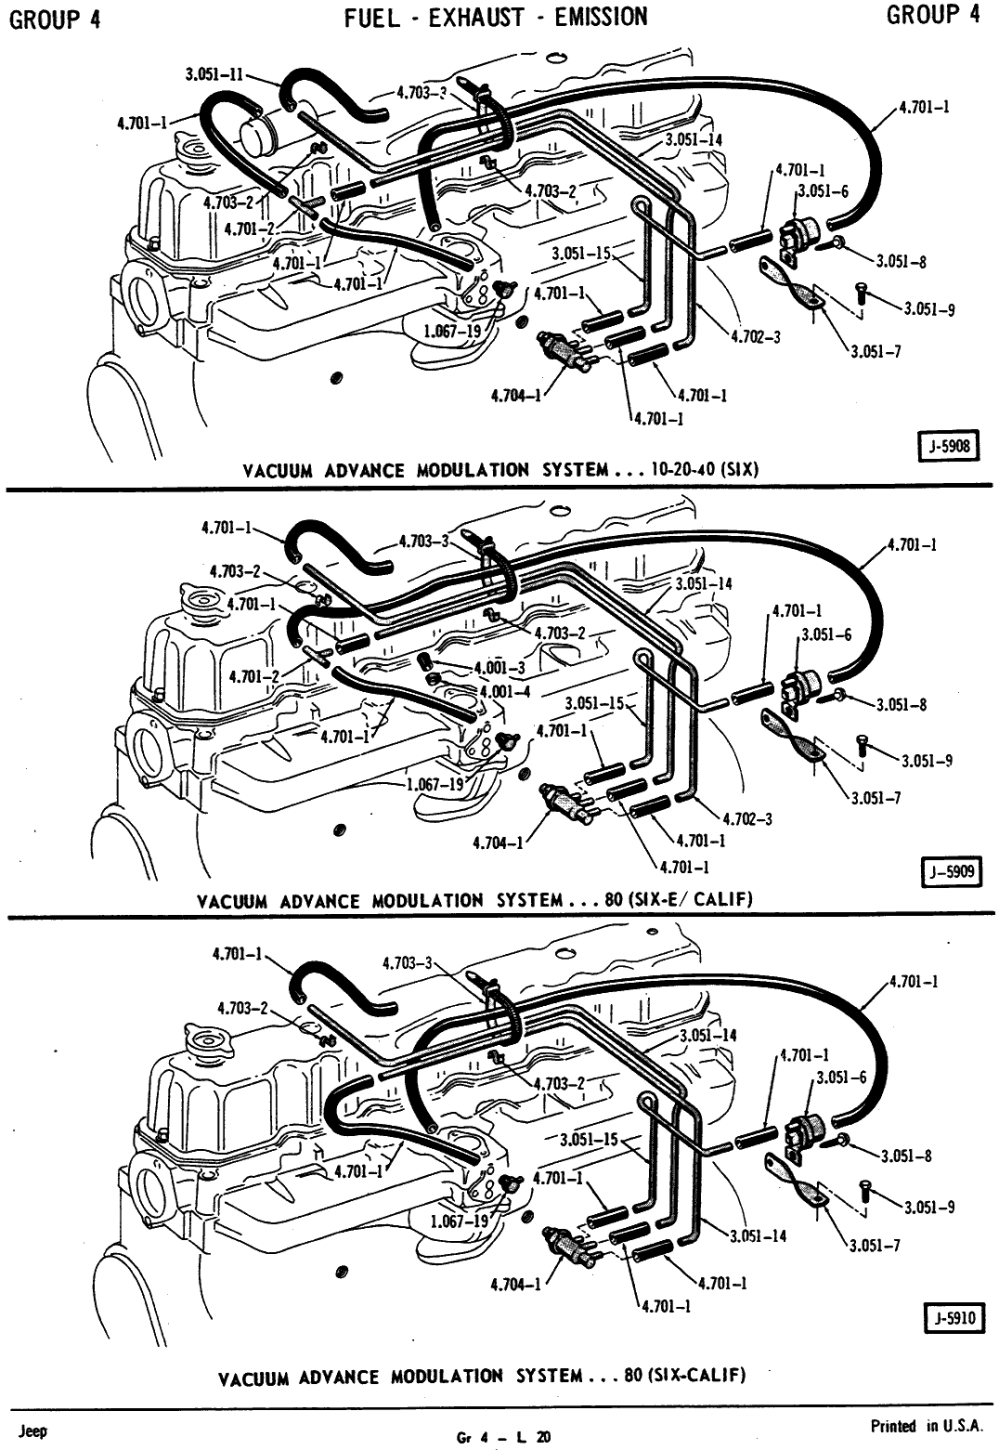 medium resolution of 1997 jeep grand cherokee vacuum line diagram wiring diagram source 2004 jeep grand cherokee grill diagram